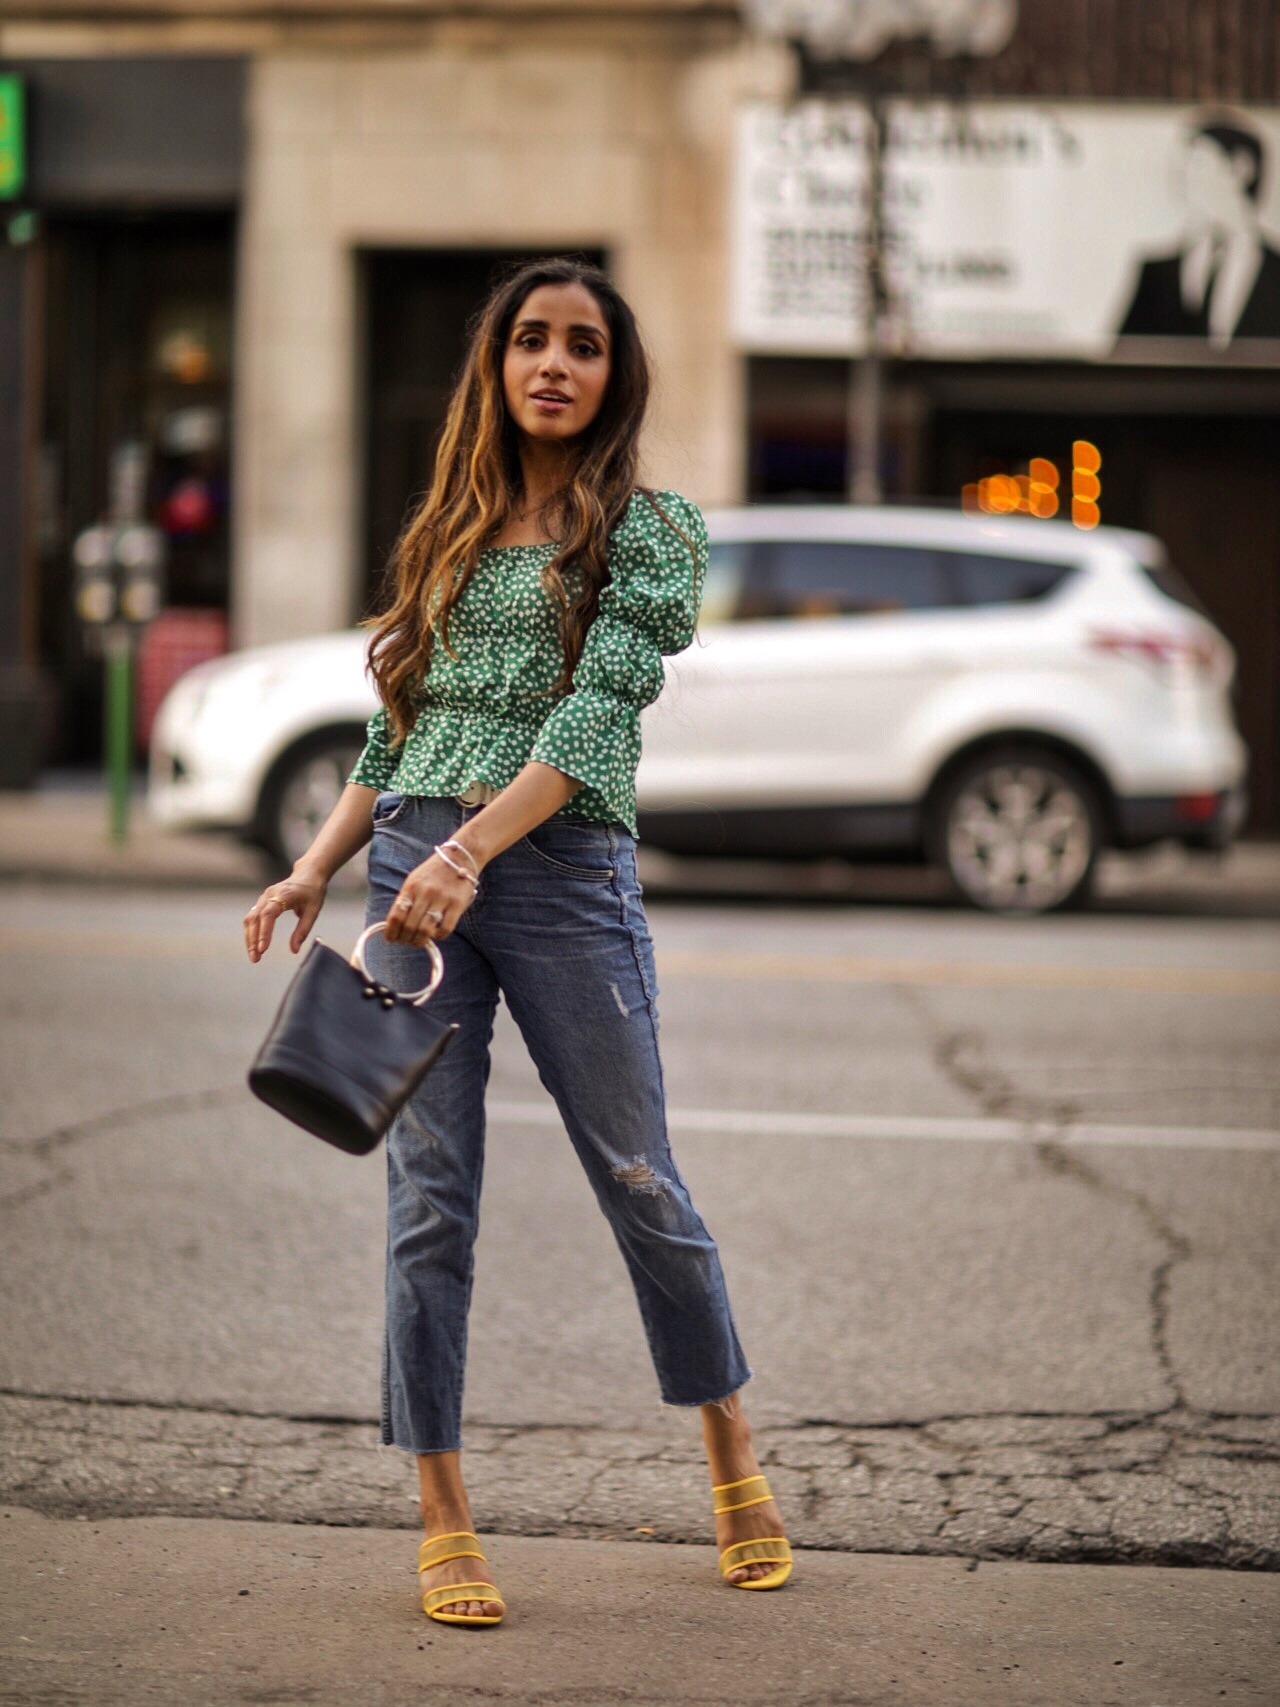 Puffy Sleeves Everyone's Raving About Shein Floral Print Square Neck Blouse Faiza Inam SincerelyHumble Summer Fashion Street Styel 2